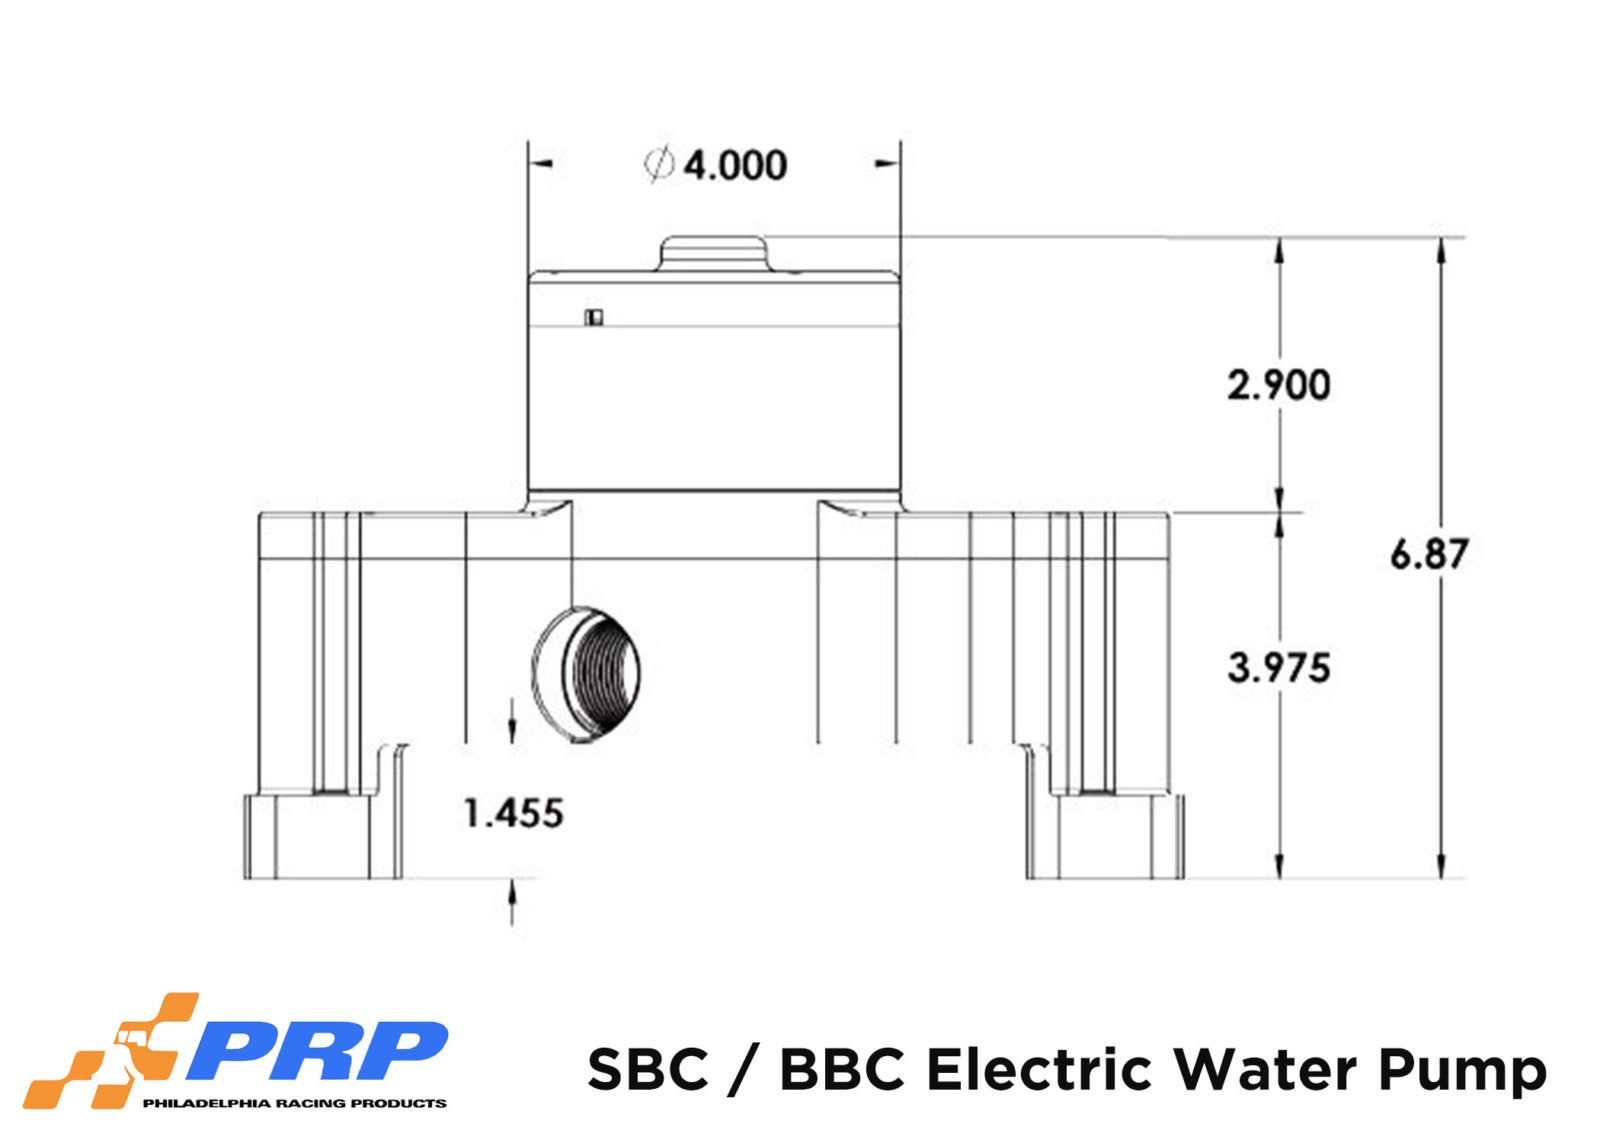 hight resolution of sbc bbc electric water pump sizing graphic made by prp racing products